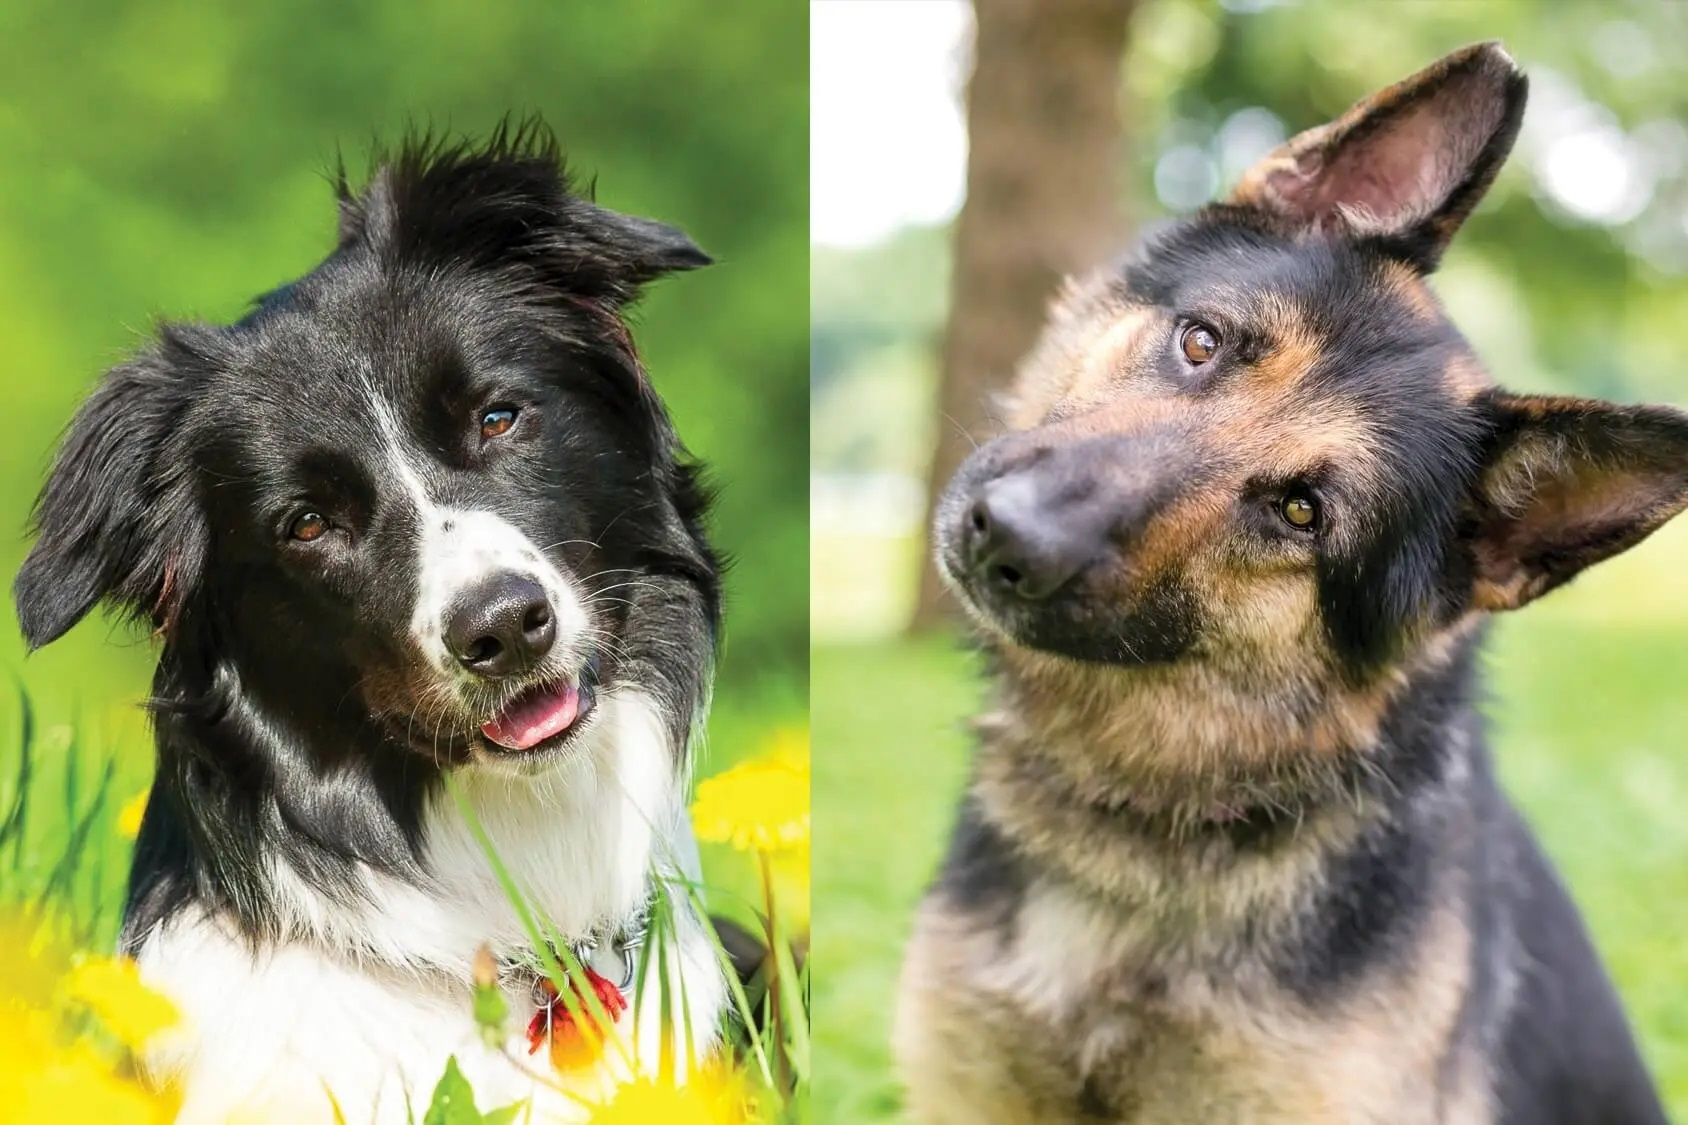 German Shepherd and Border Collie Mix - Photo by perfectdogbreeds